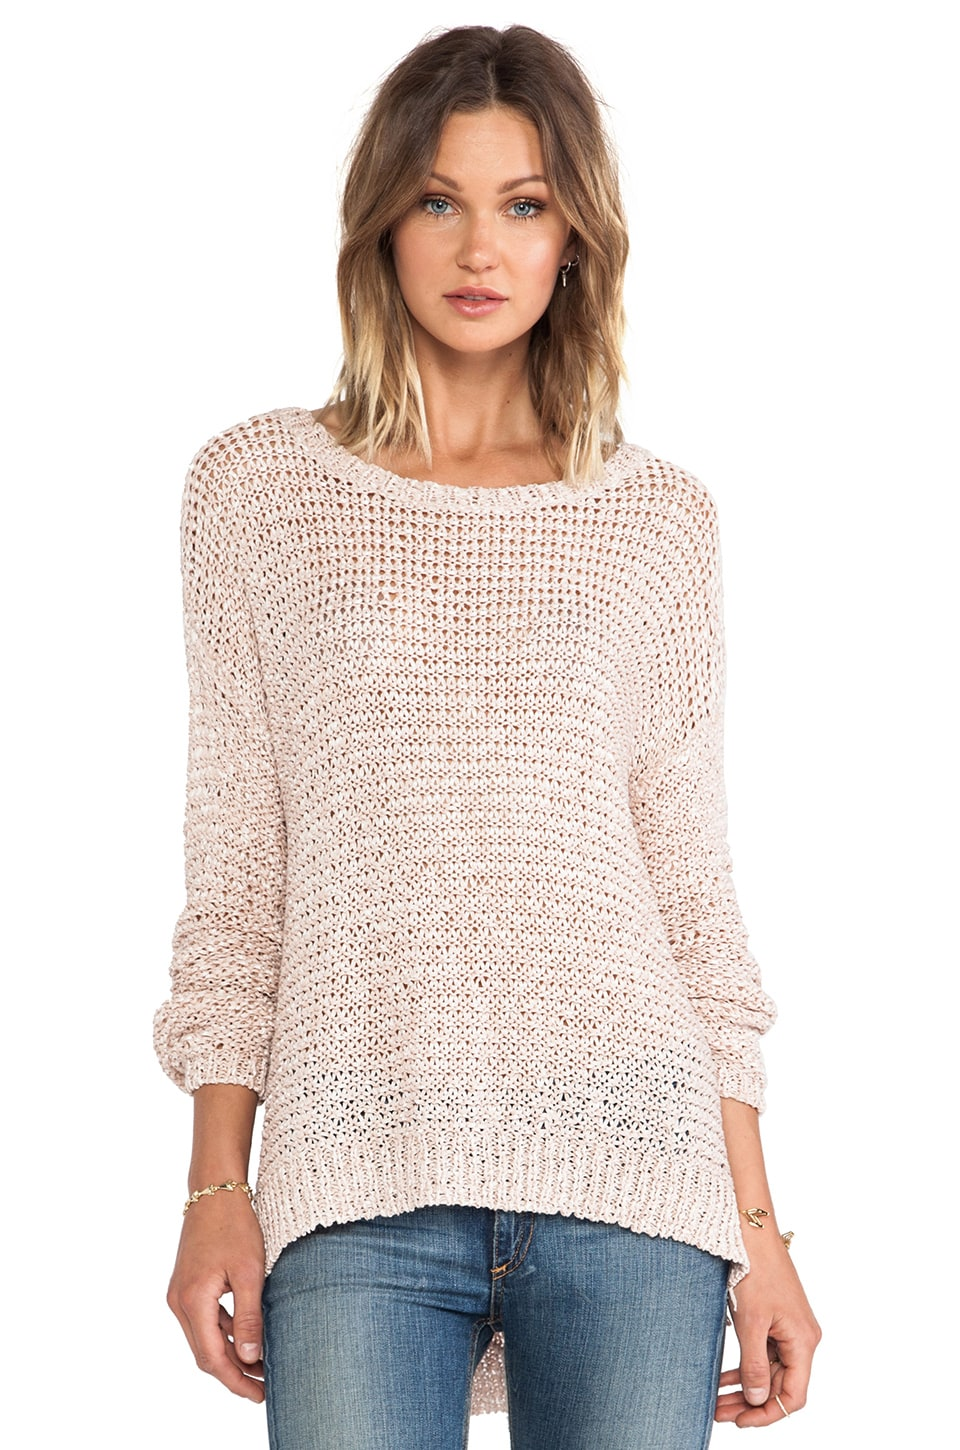 Elizabeth and James Lattice Boxy Pullover in Nude/Nude